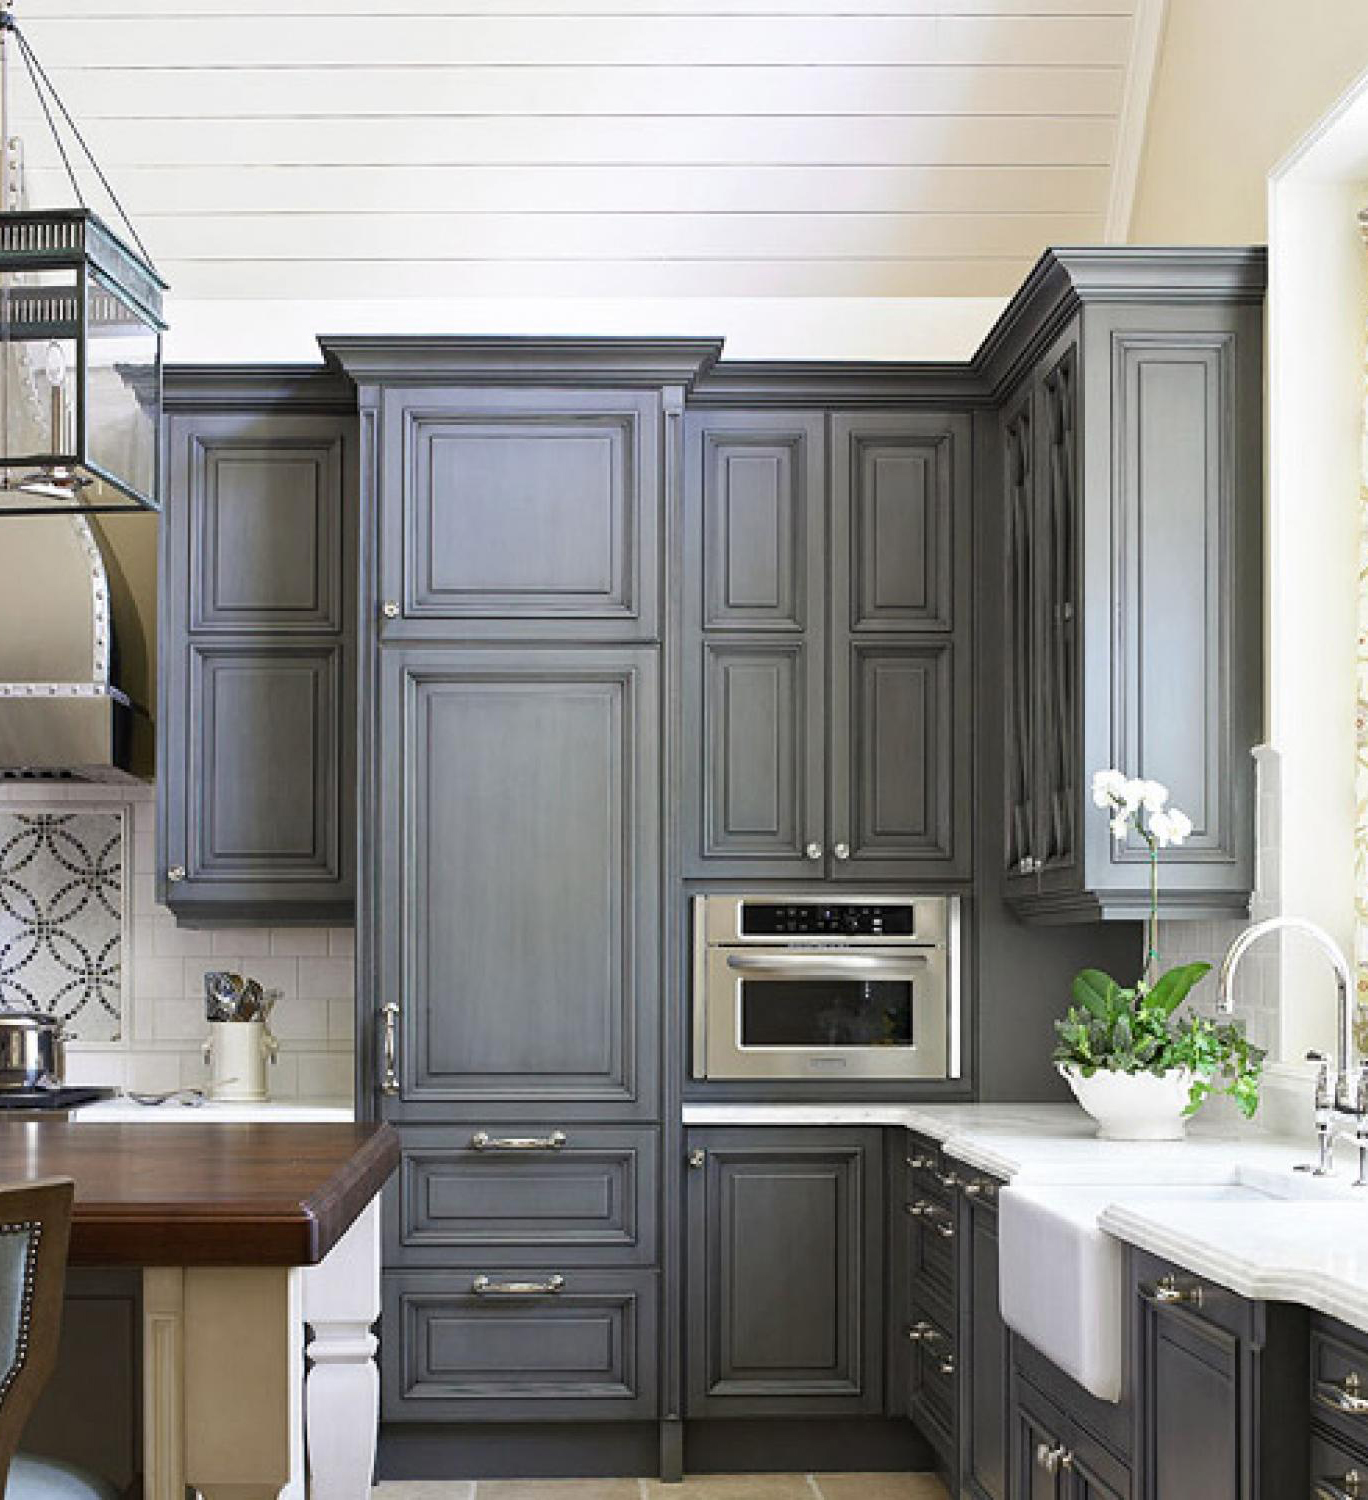 Kitchen with Blue-Gray Cabinets